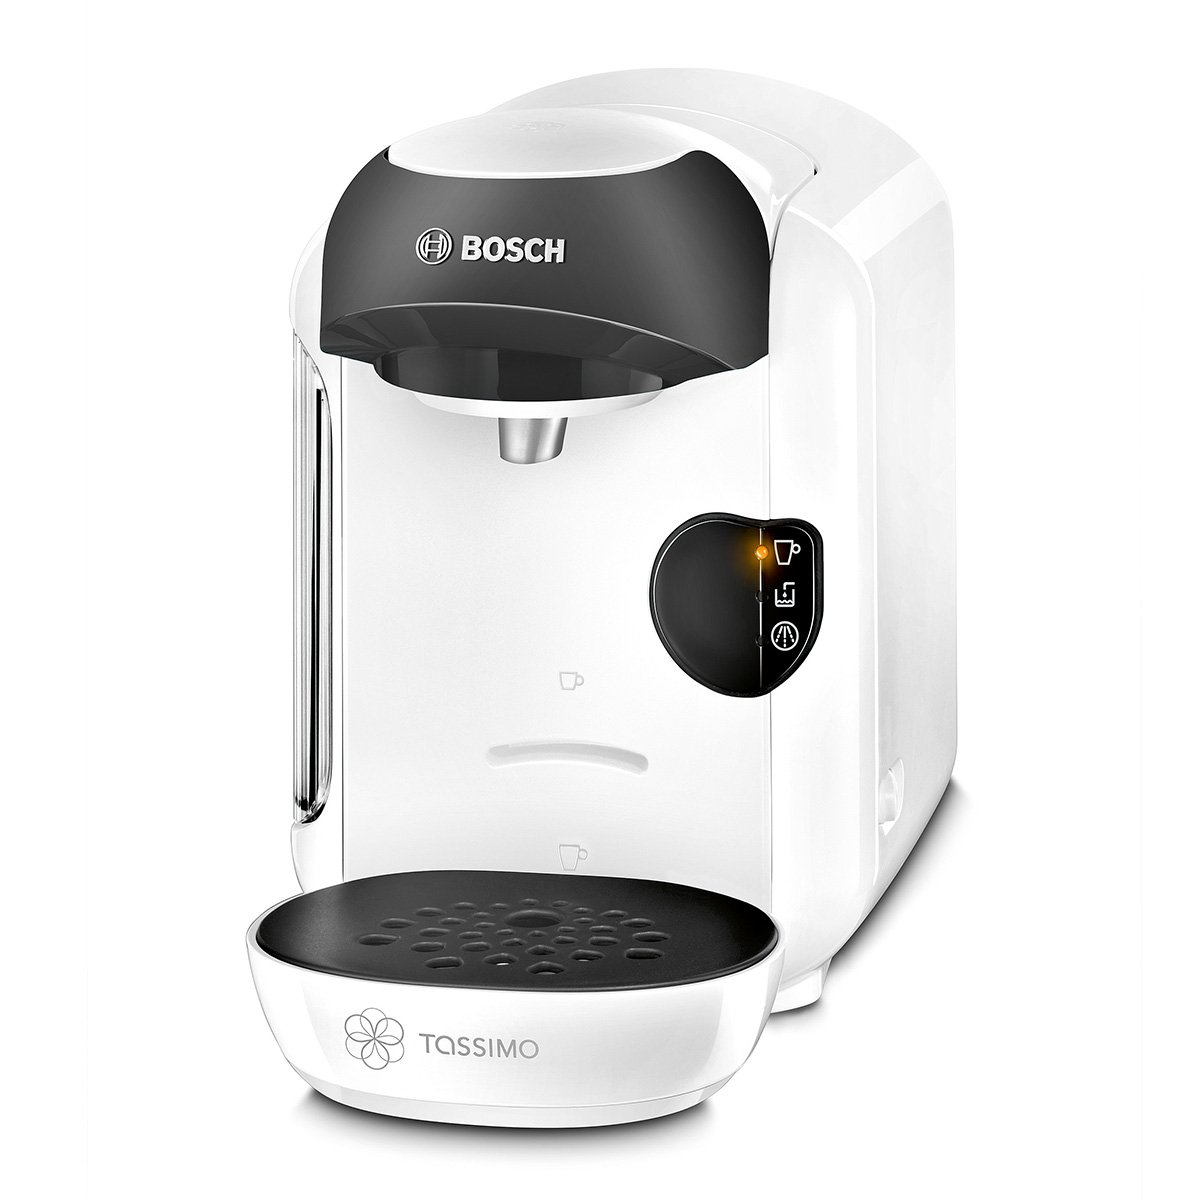 Bosch Tassimo Coffee Maker Models : Bosch Tassimo TAS1254GB Vivy Multi Beverage Hot Drinks Coffee Machine 1300 White eBay